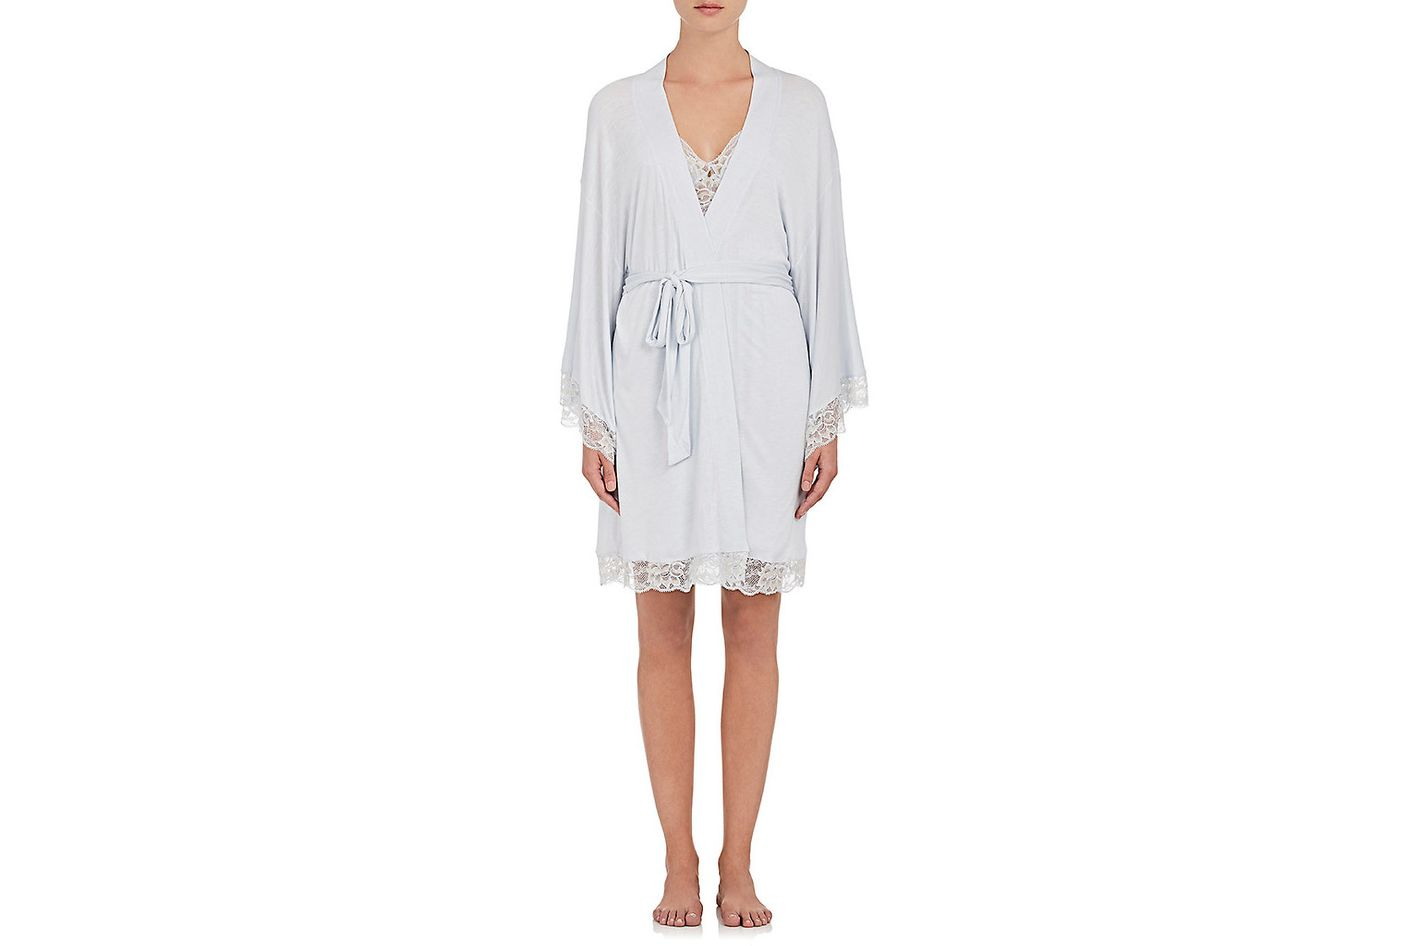 Eberjey Golden Girl Lace-Trimmed Jersey Kimono Robe